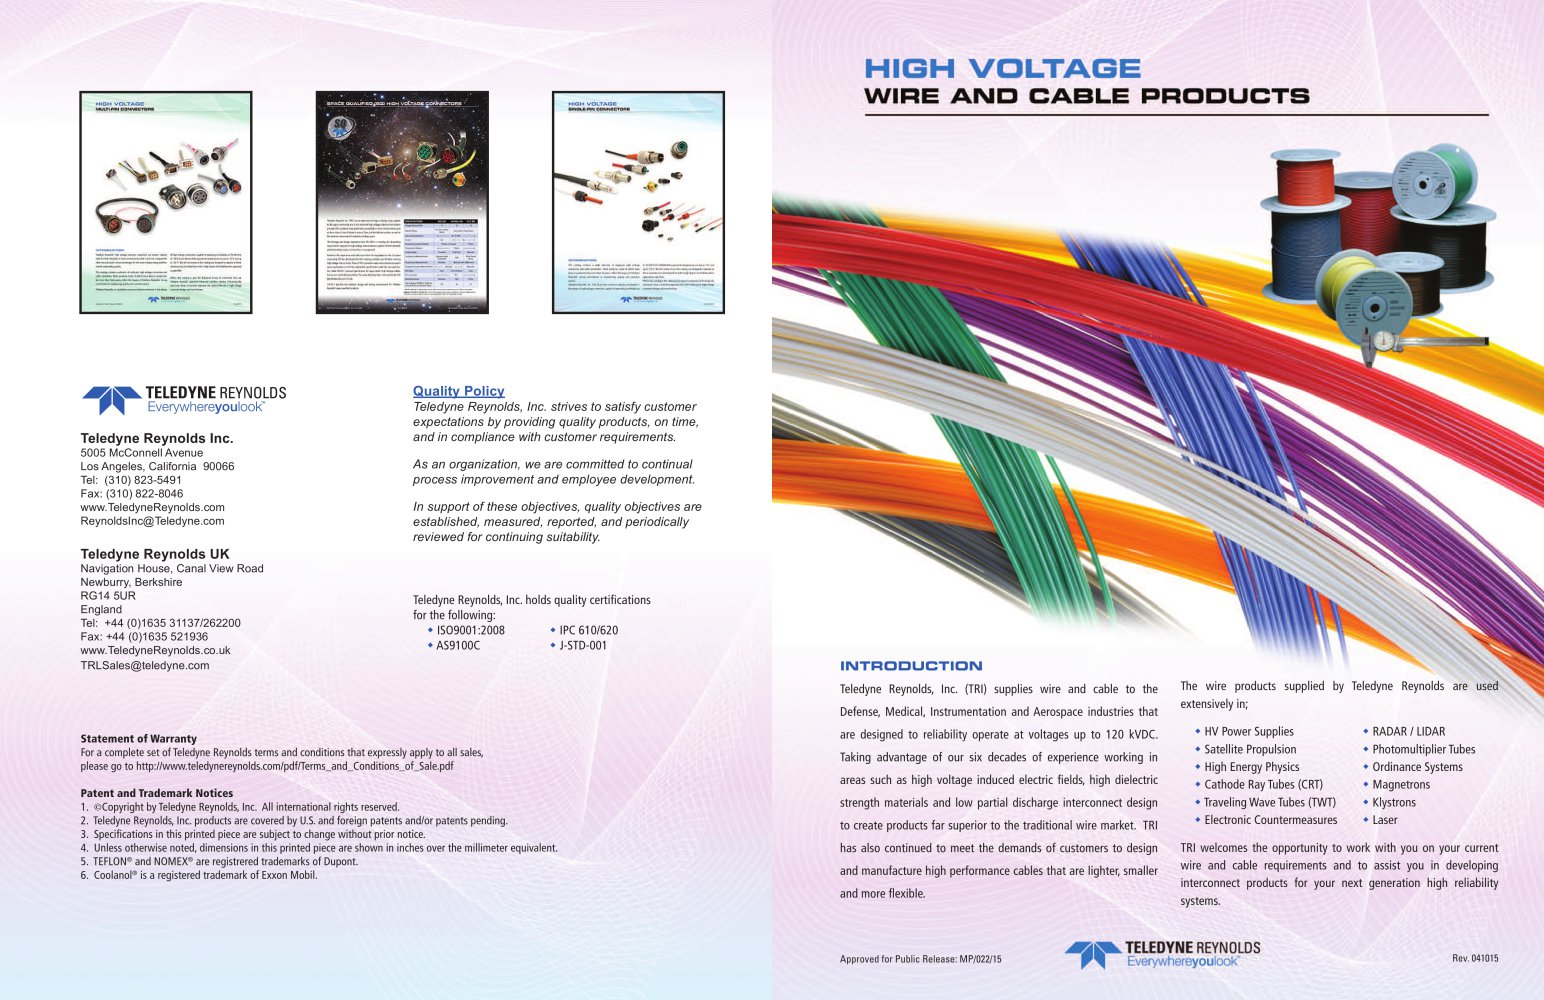 HIGH VOLTAGE WIRE AND CABLE PRODUCTS - Teledyne Reynolds - PDF ...